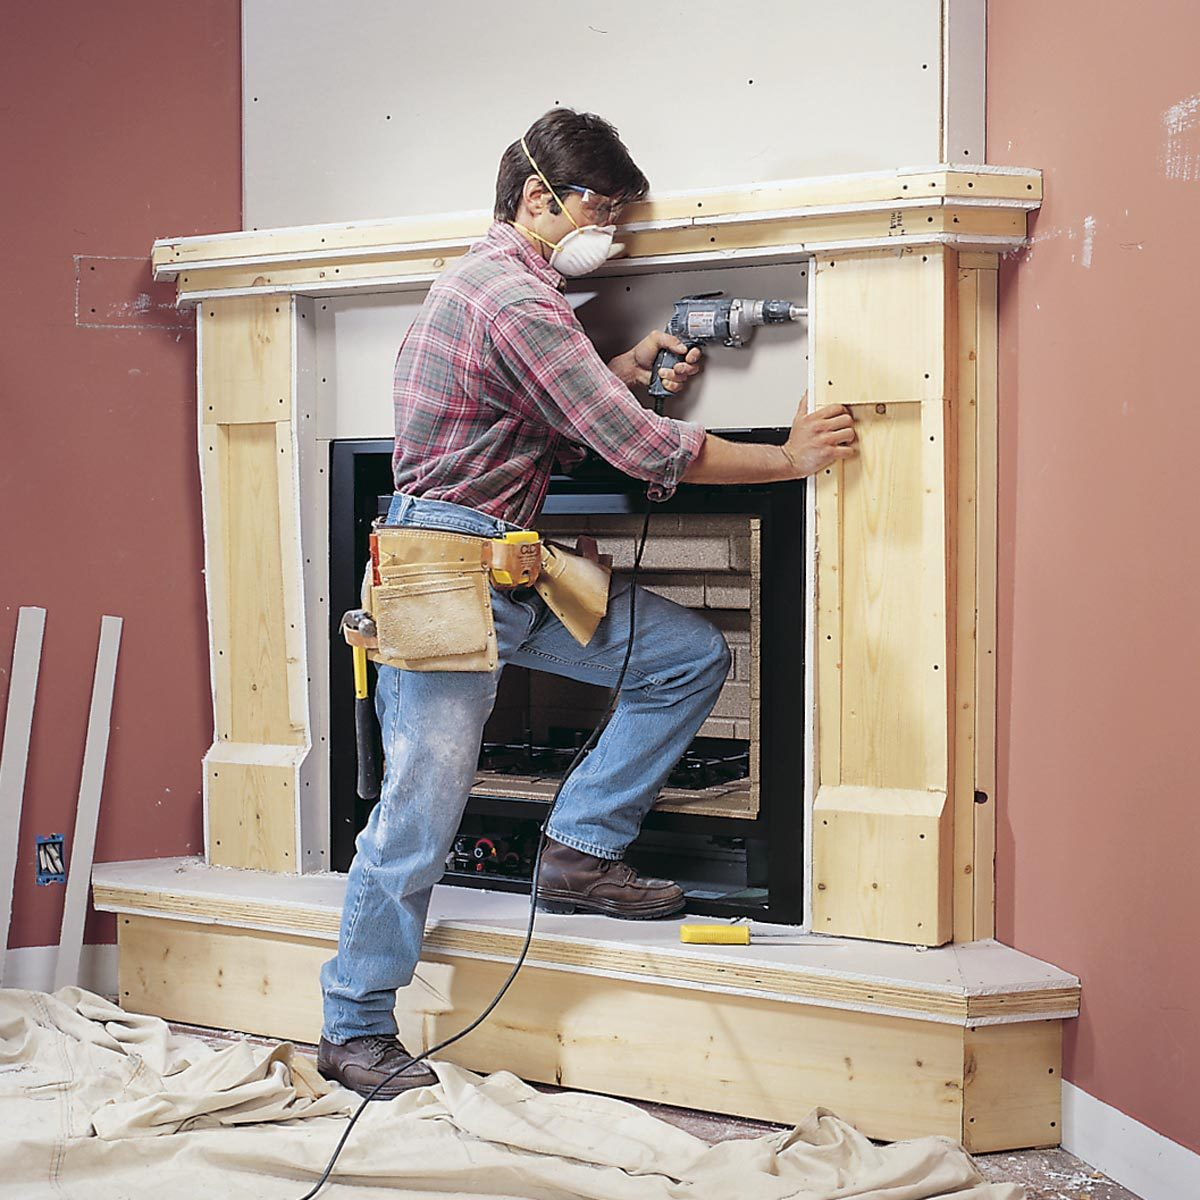 Artificial Fireplaces How To Install A Gas Fireplace Diy Built In Gas Fireplace The